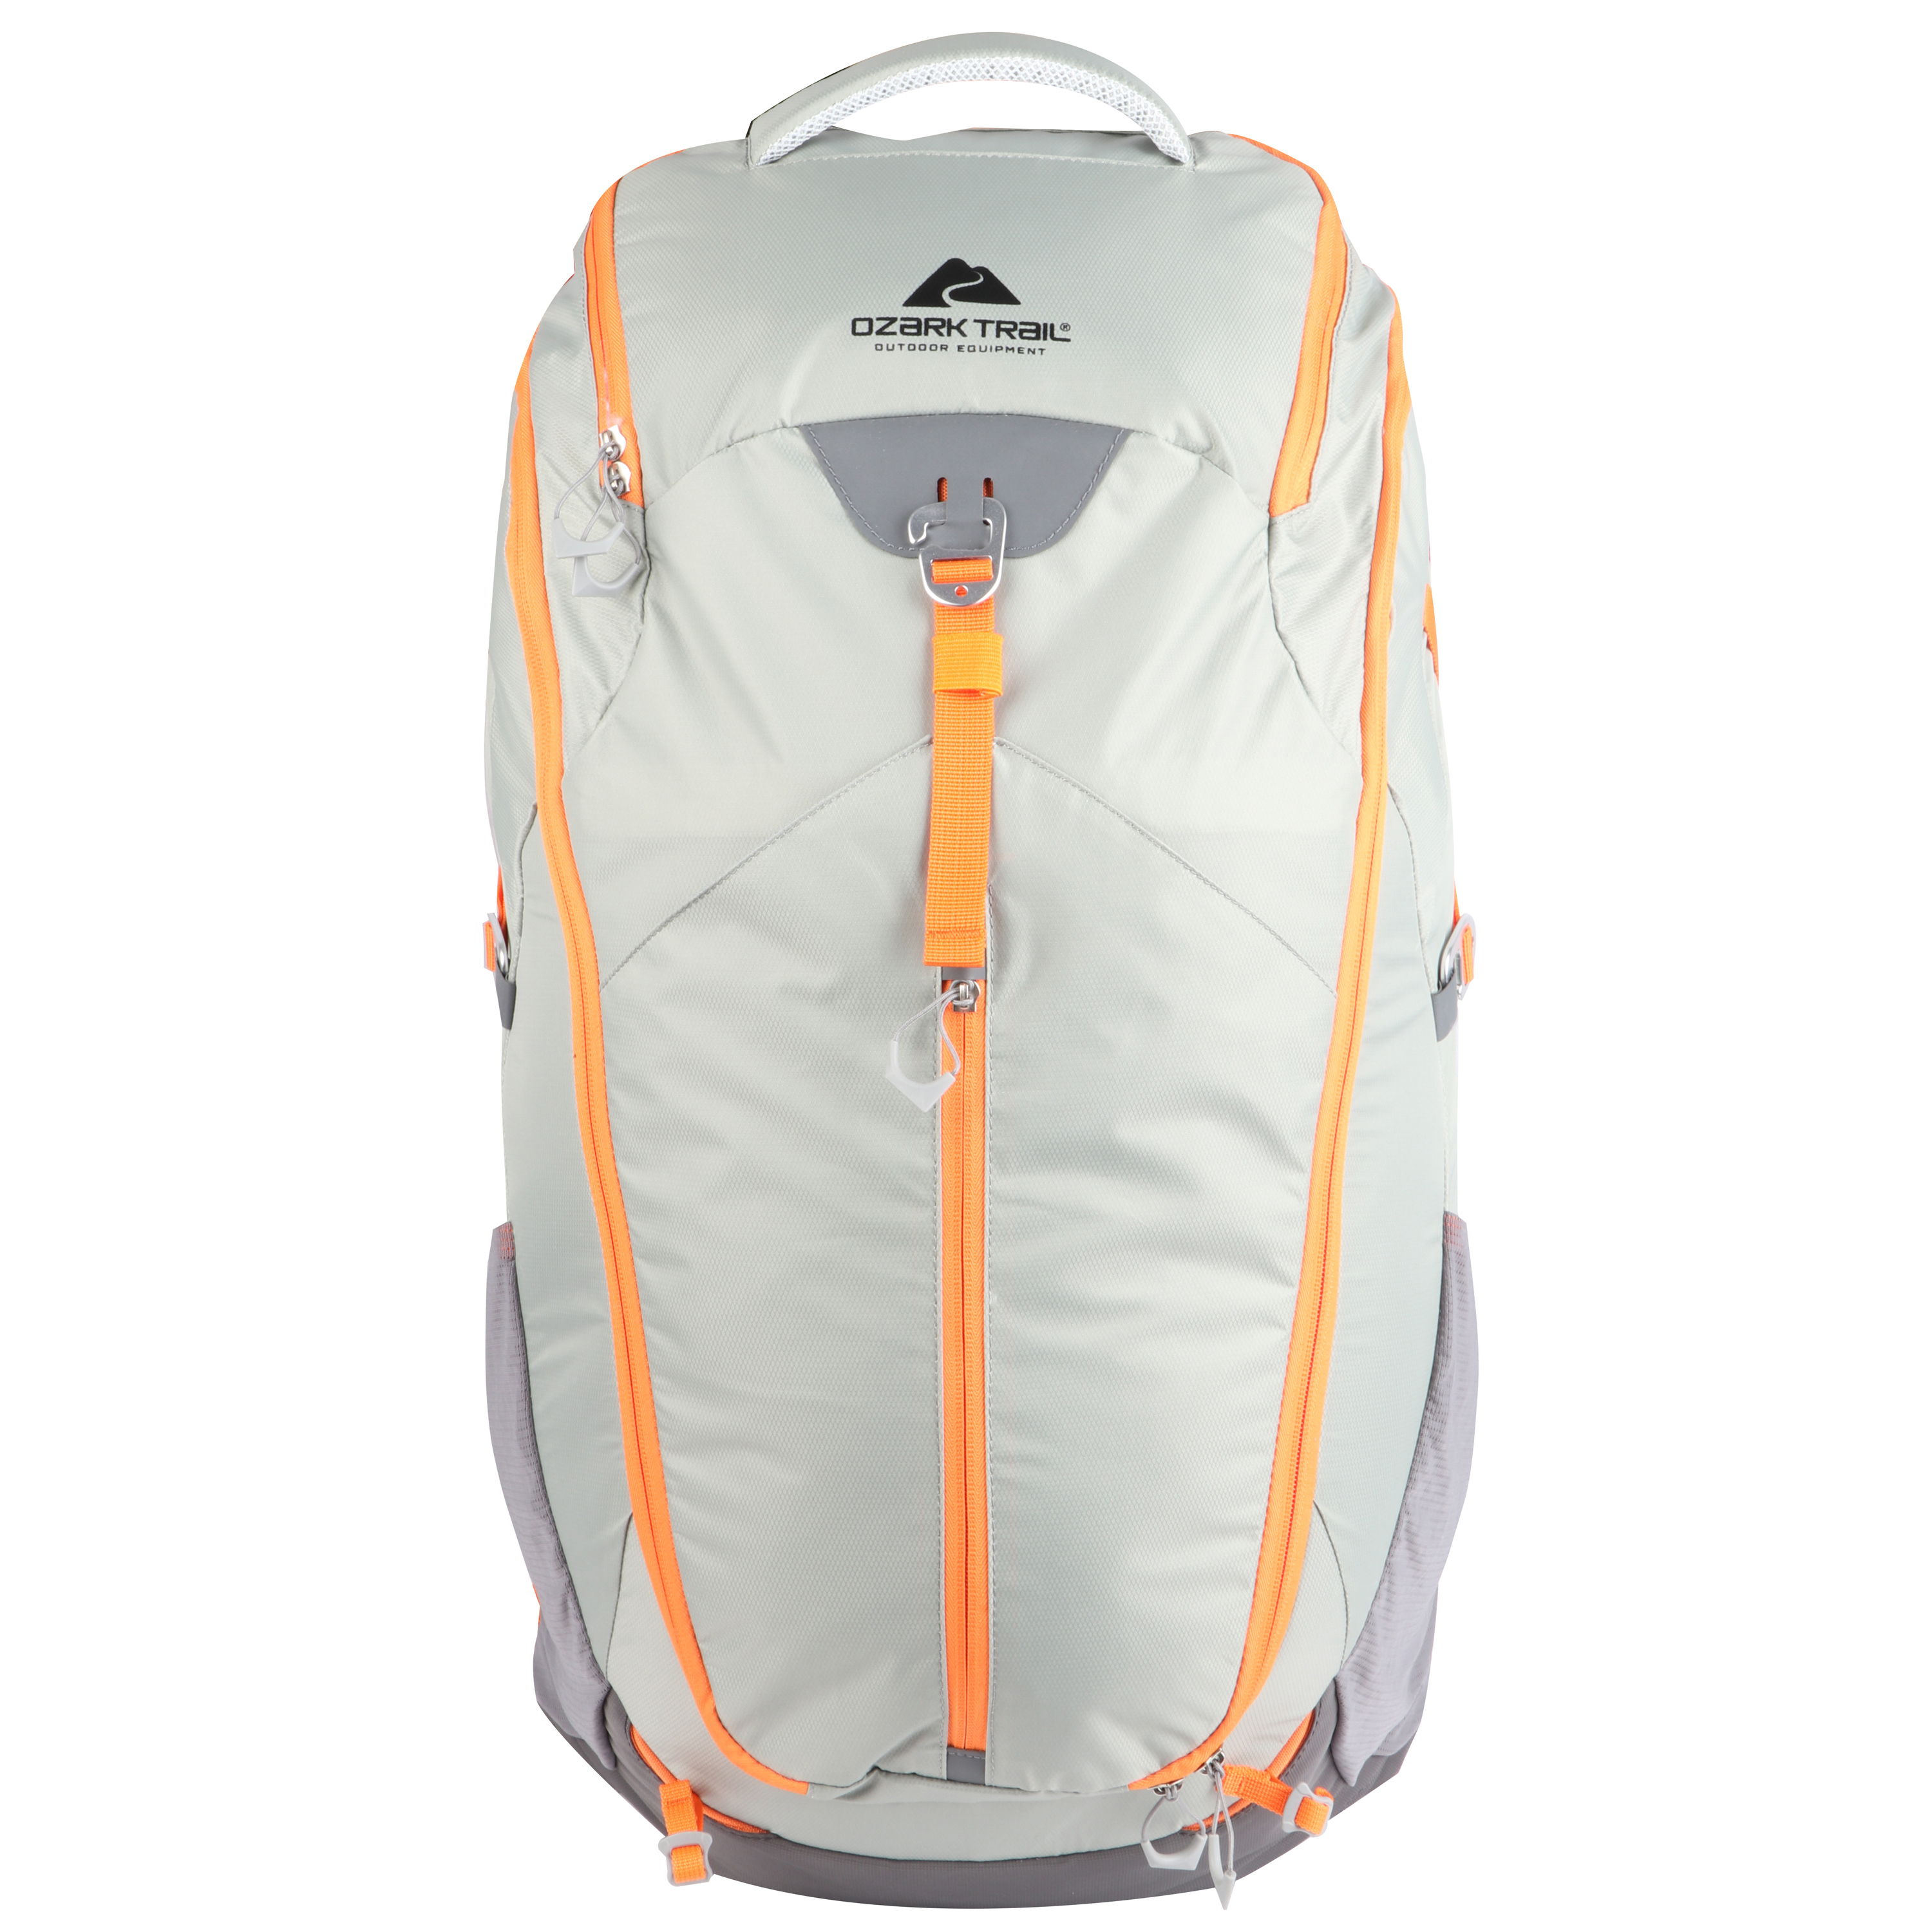 Ozark Trail Lightweight Hydration Compatible Hiking Backpack 40L